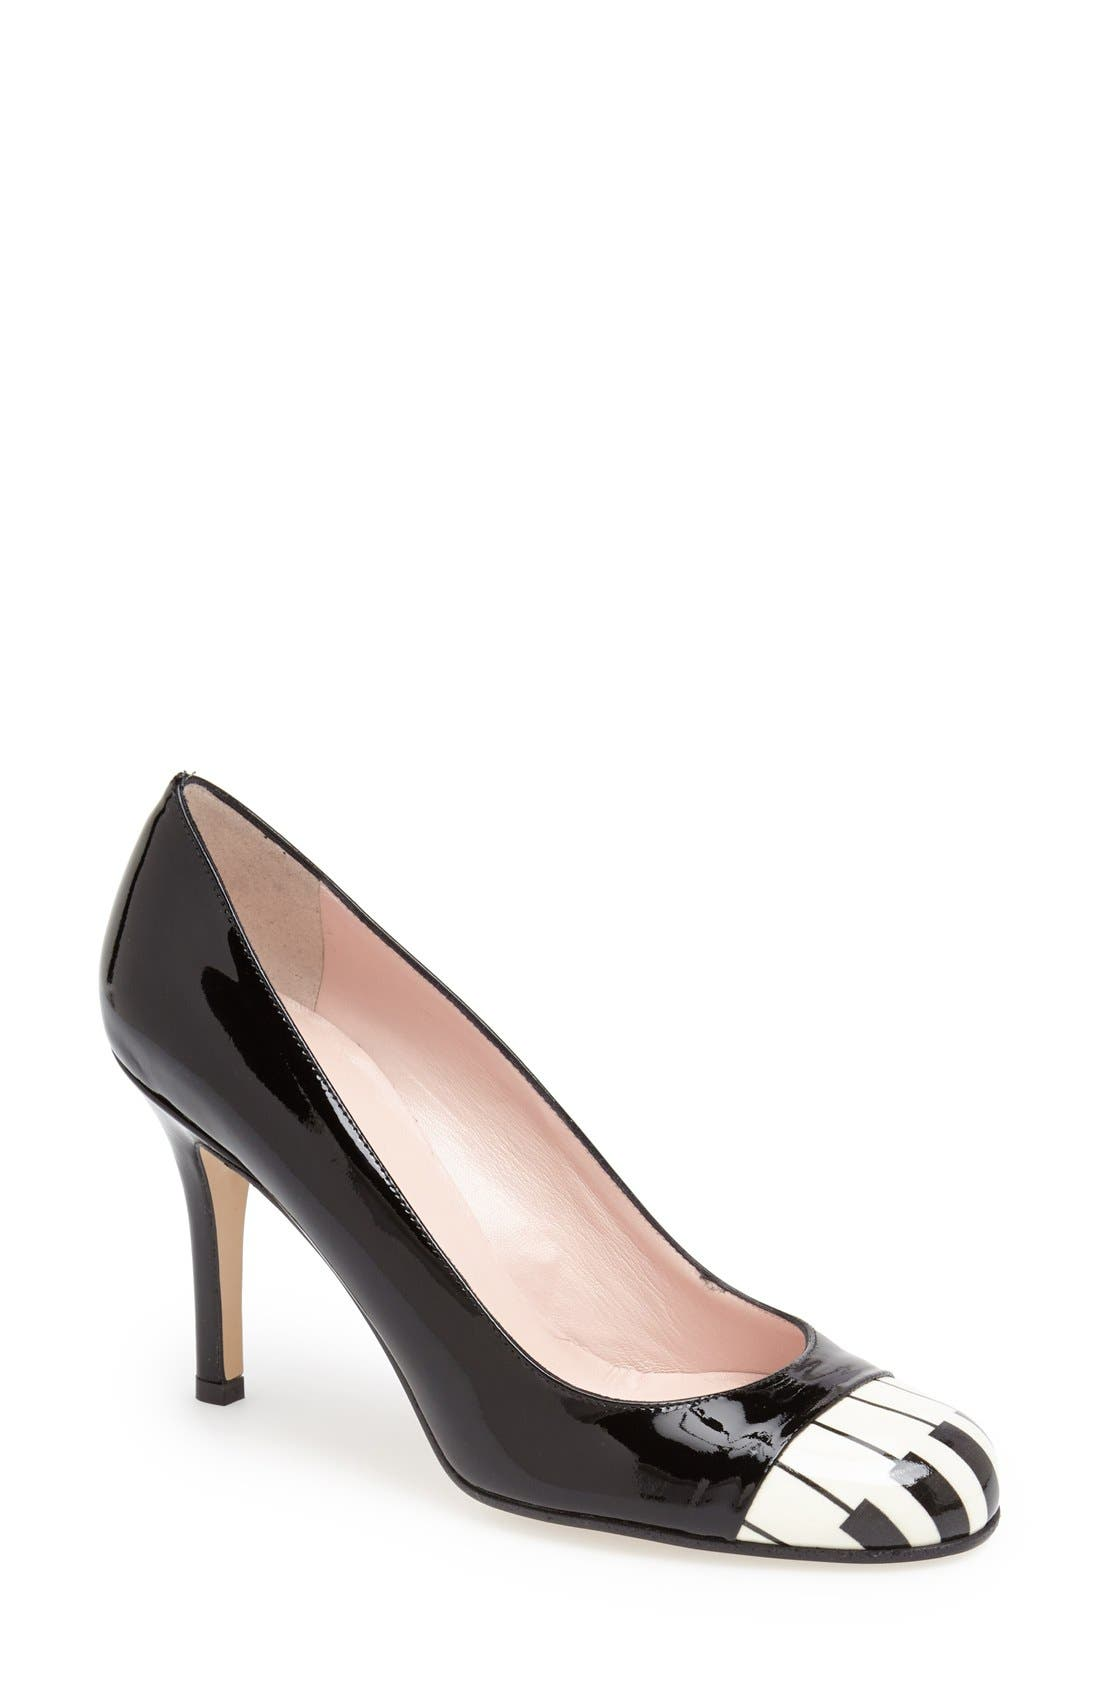 Alternate Image 1 Selected - kate spade new york 'keys' pump (Women)